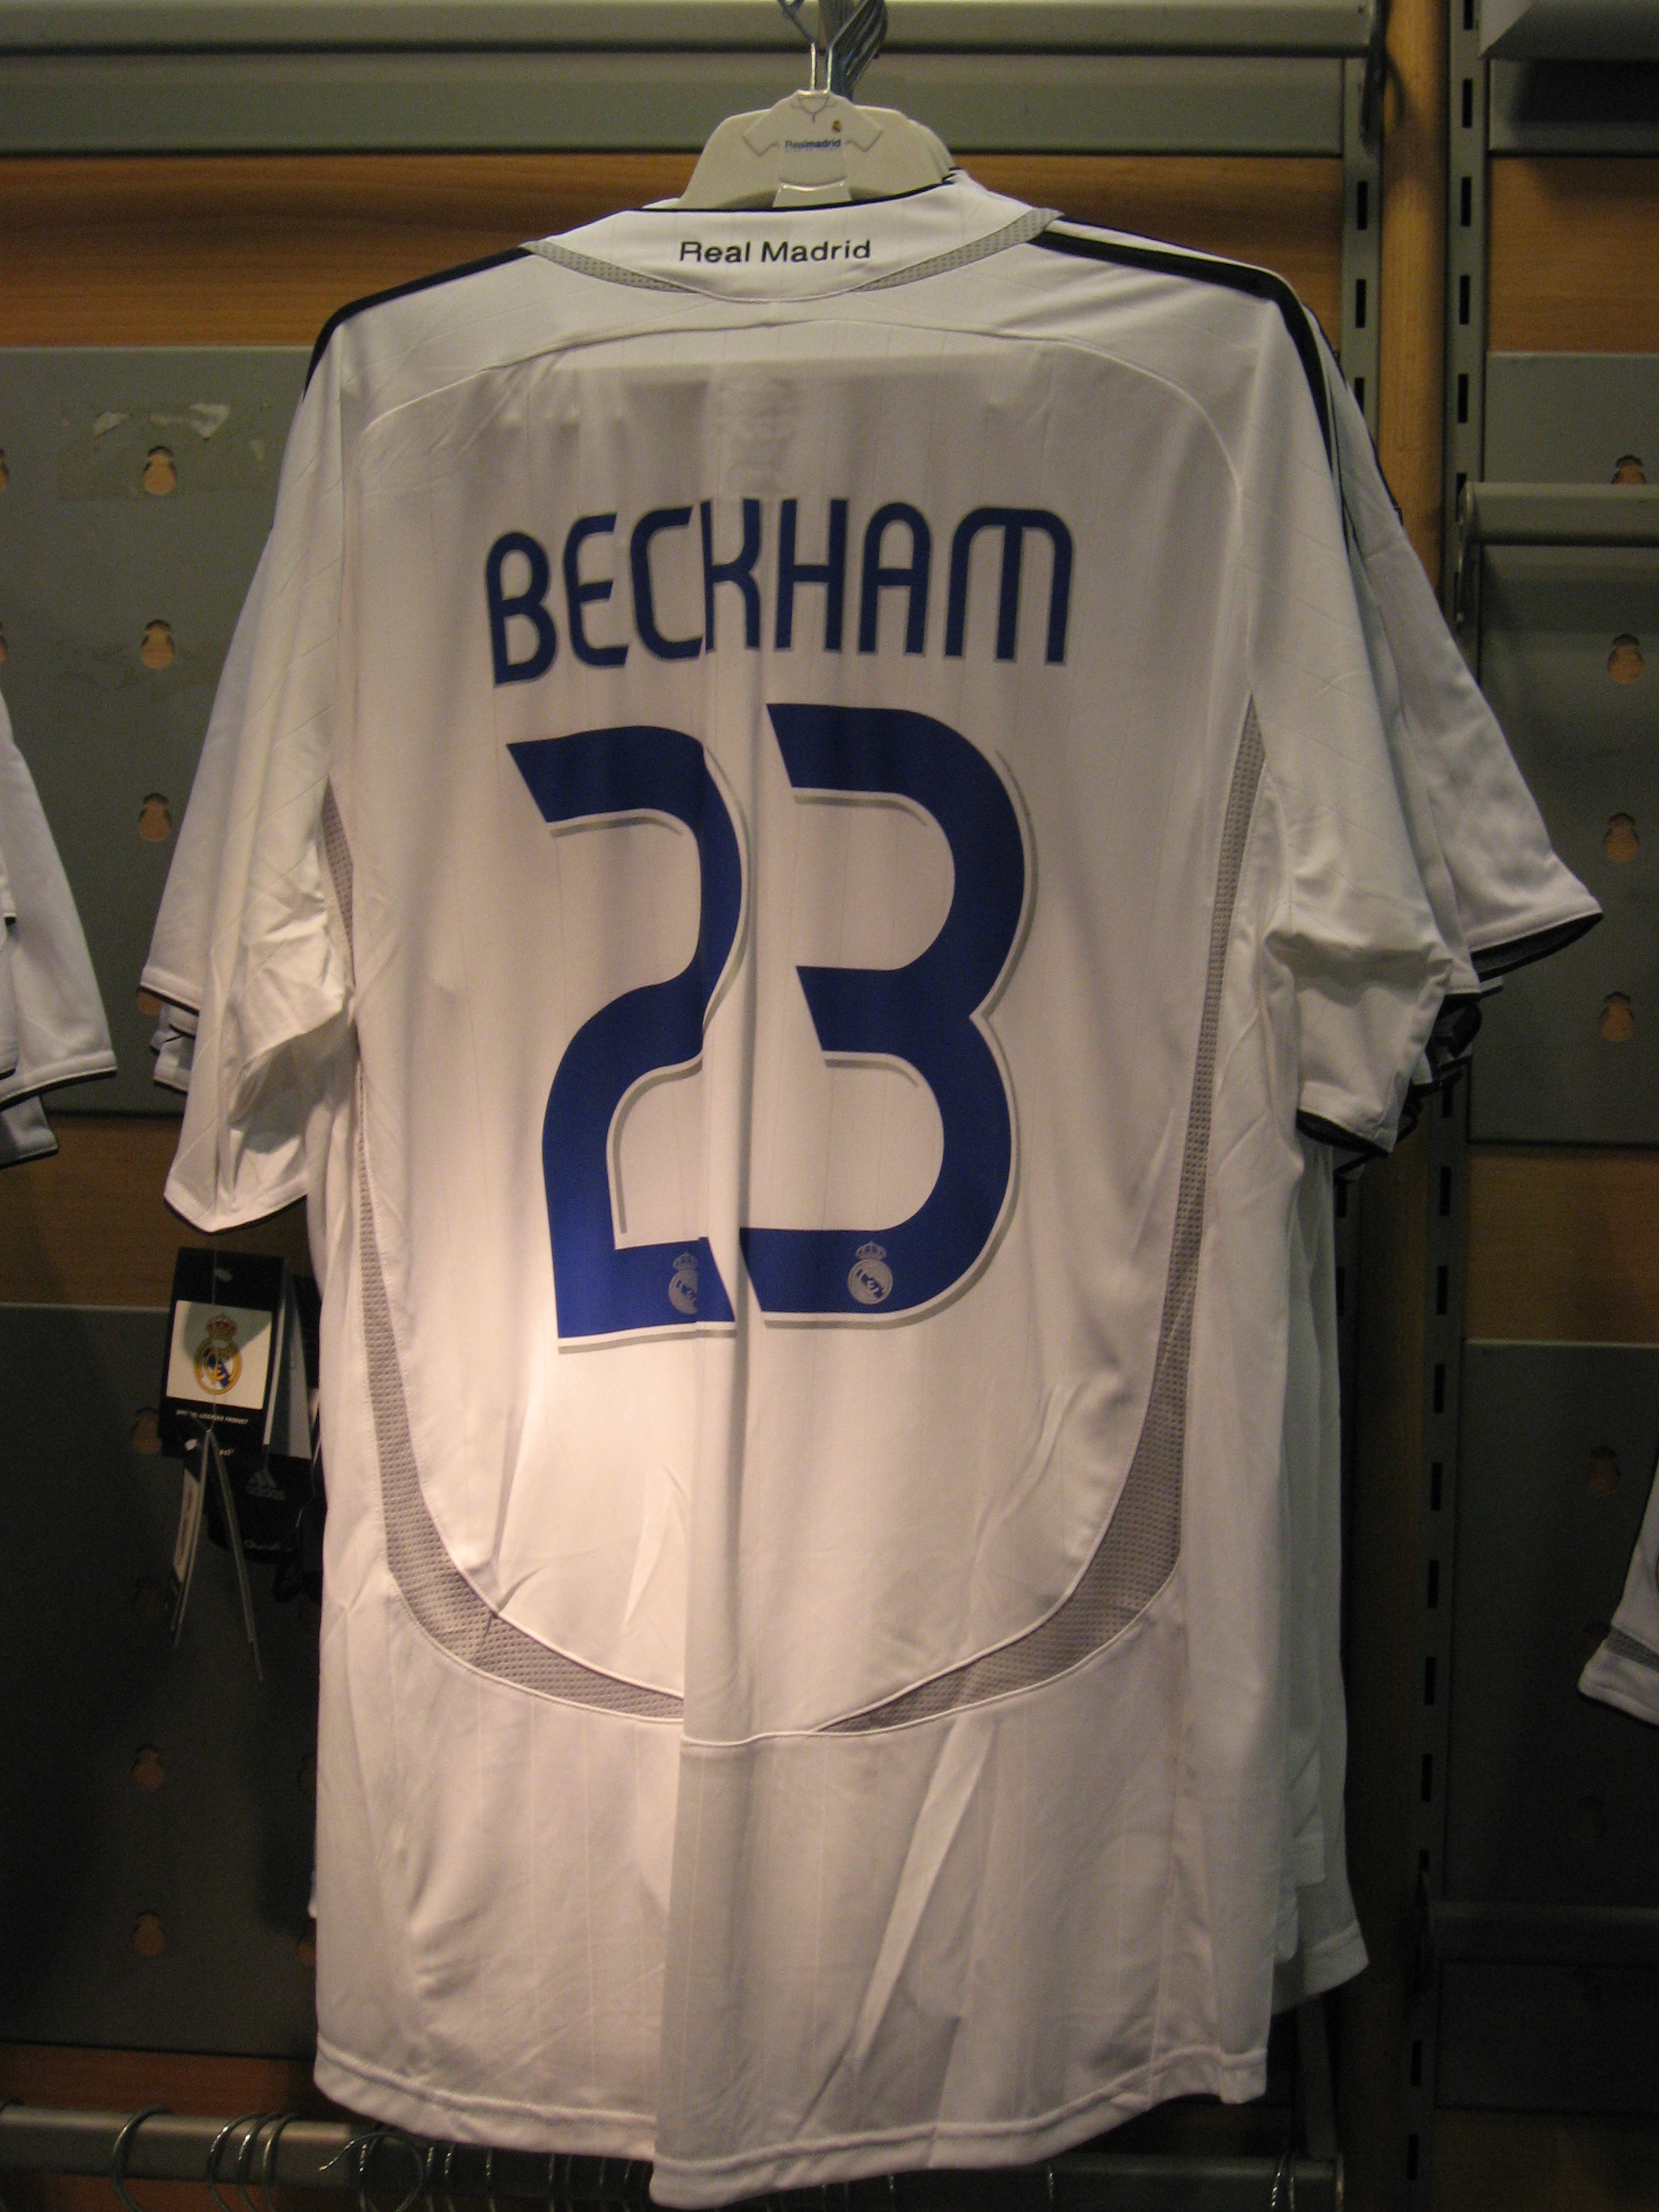 hot sale online 588ac 45a85 File:Beckham shirt Real Madrid.jpg - Wikimedia Commons